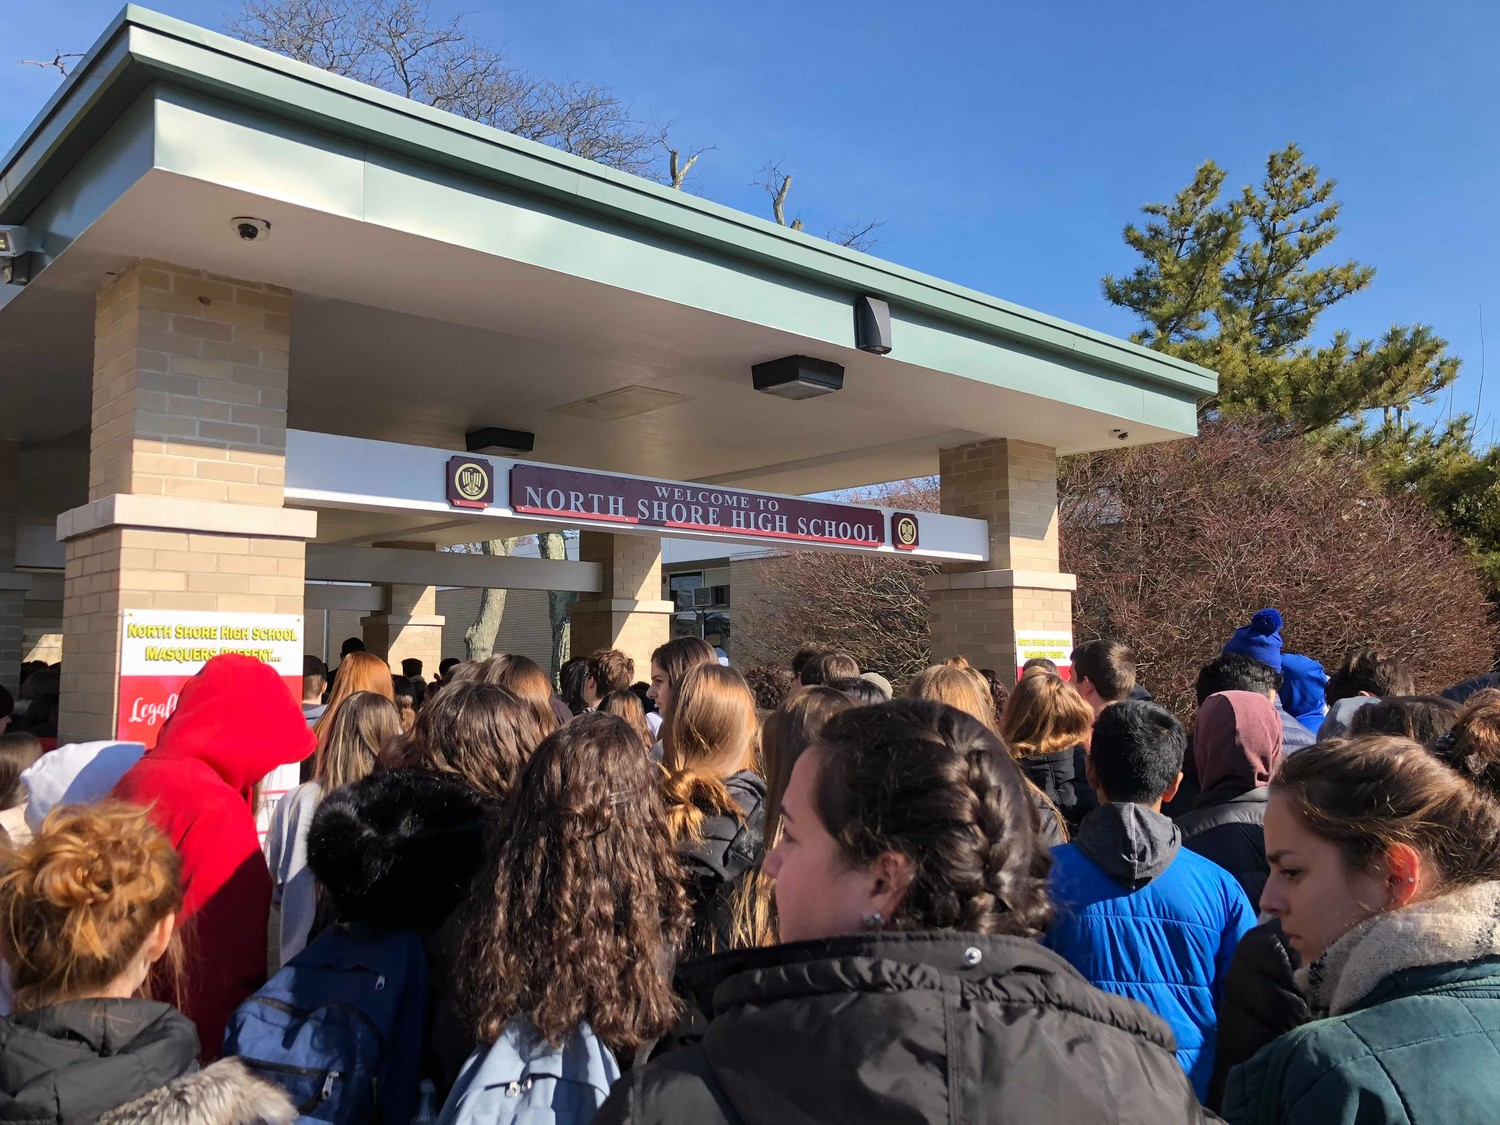 North Shore High School students flooded the outer perimeter of the school today to participate in the National School Walkout event.